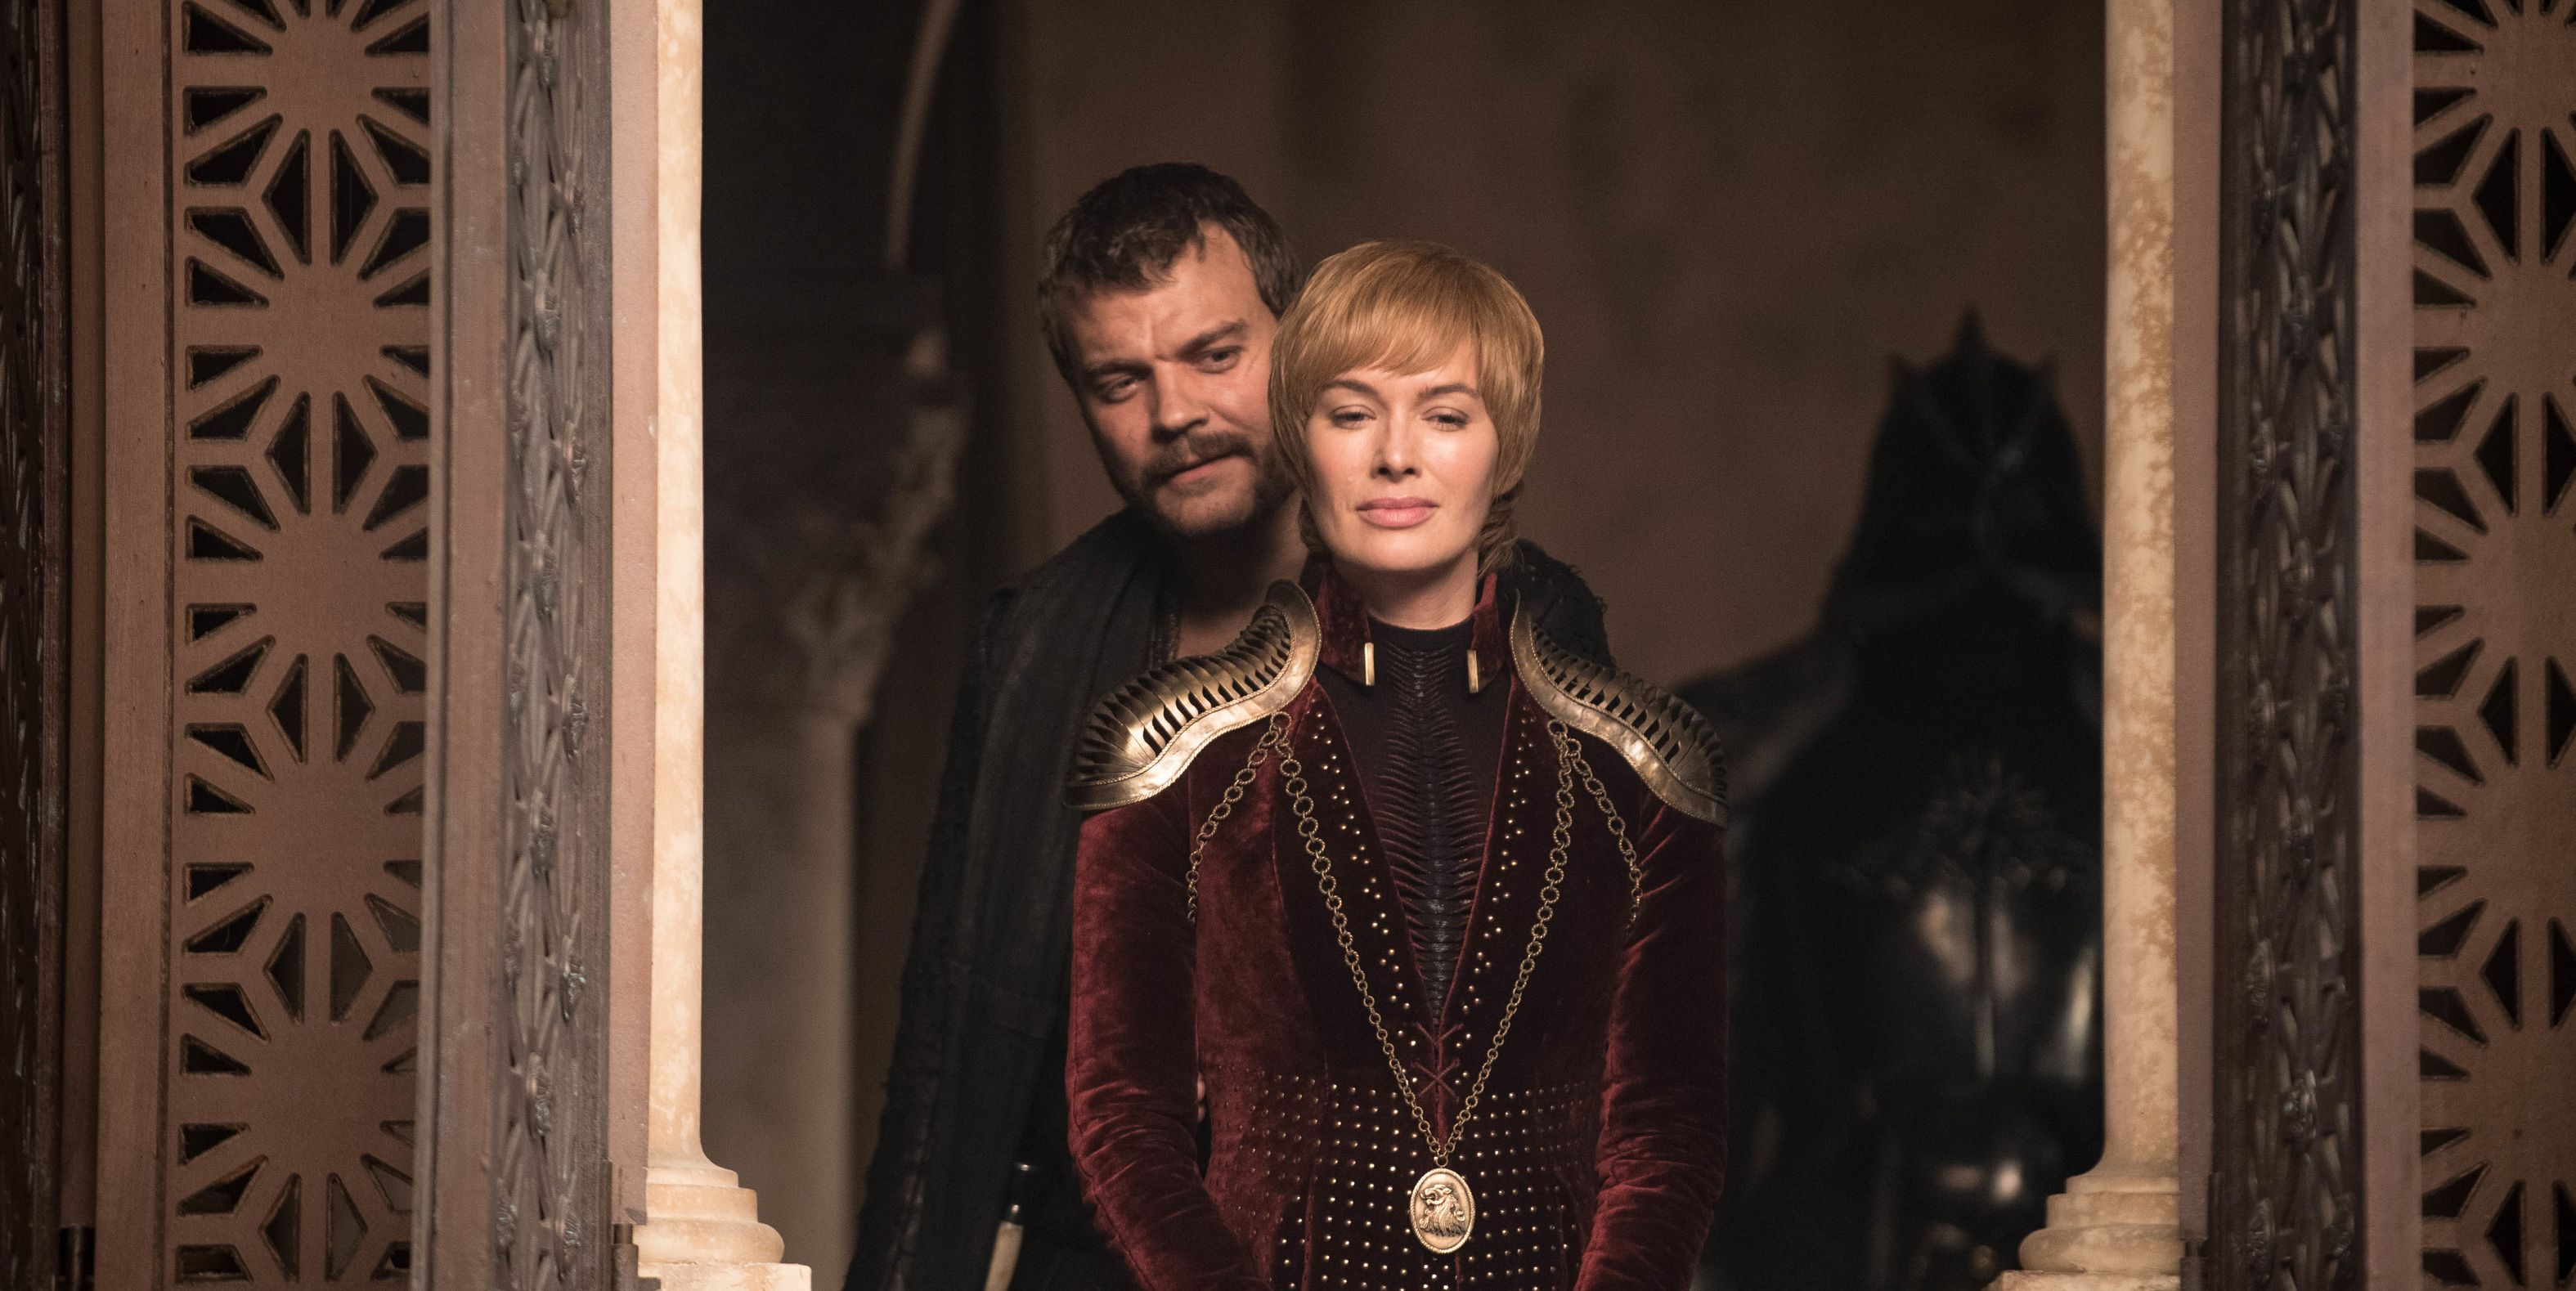 Game of Thrones, Season 8, Episode 4, Cersei Lannister, Euron Greyjoy